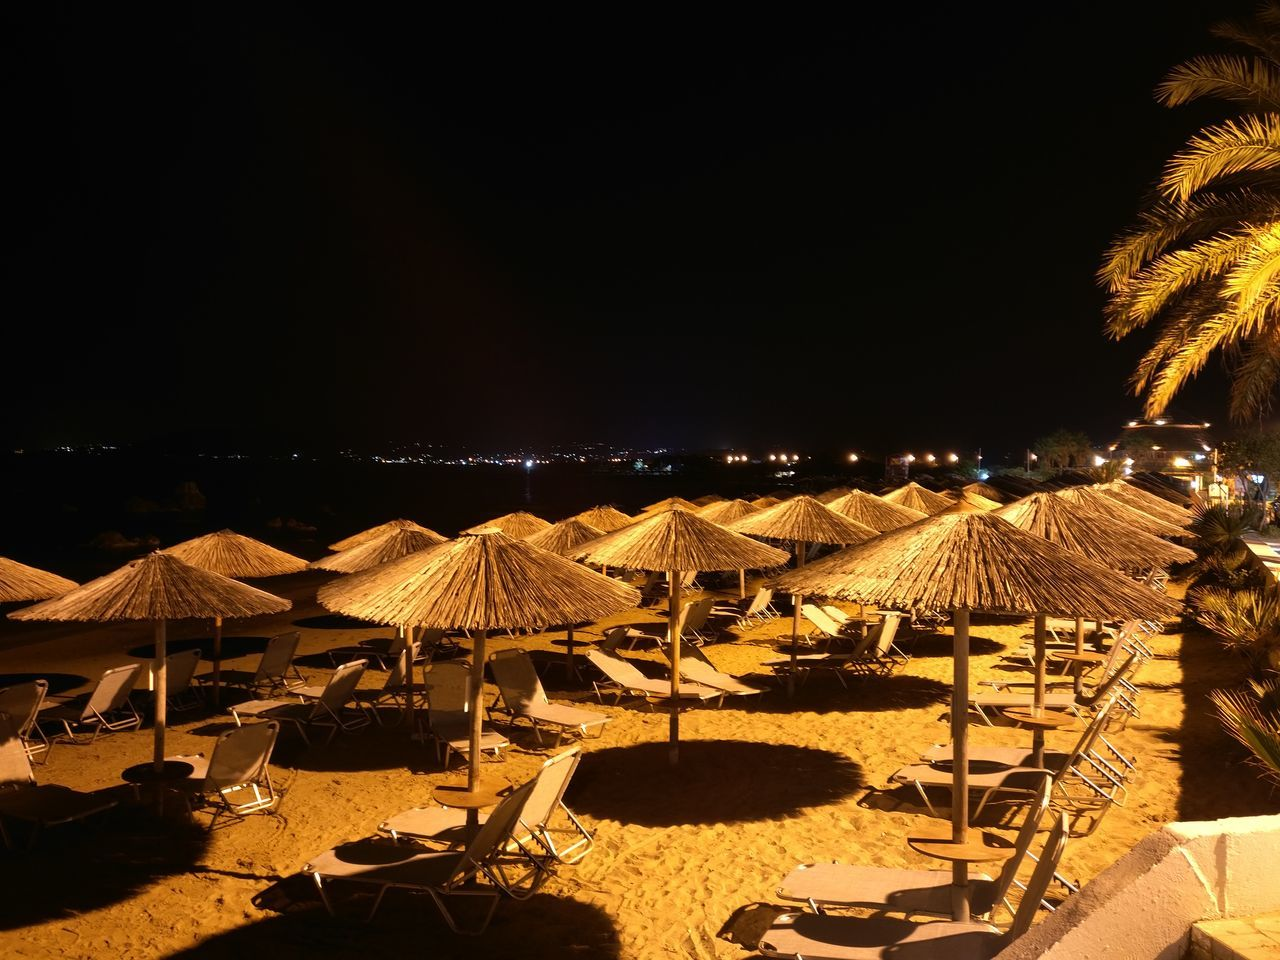 beach, night, summer, outdoors, vacations, sand, nature, no people, clear sky